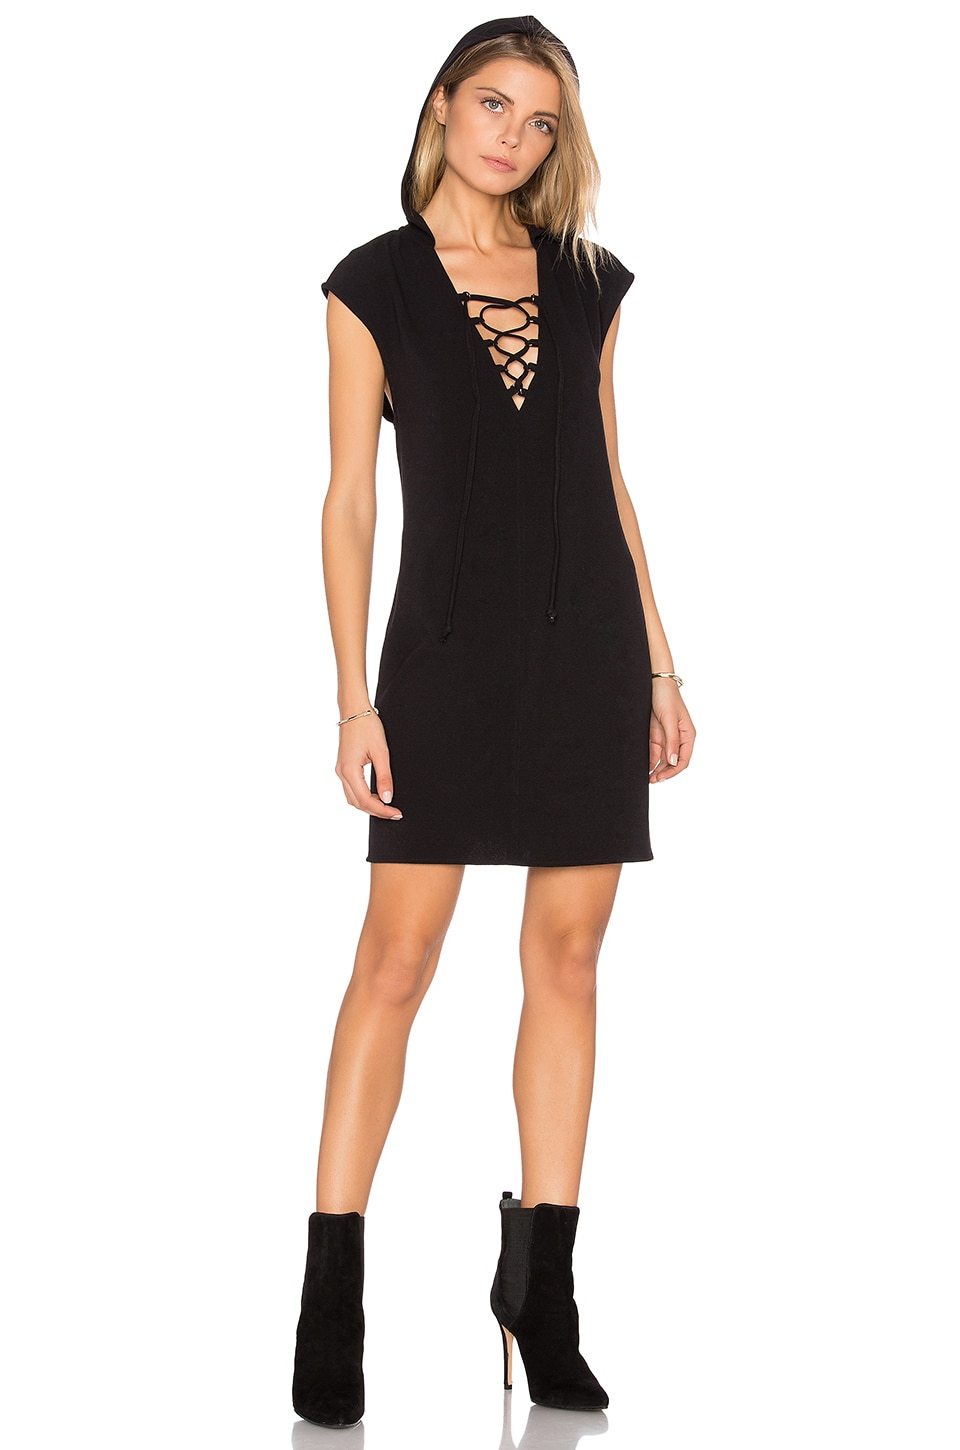 Logan Dress by Dolce Vita